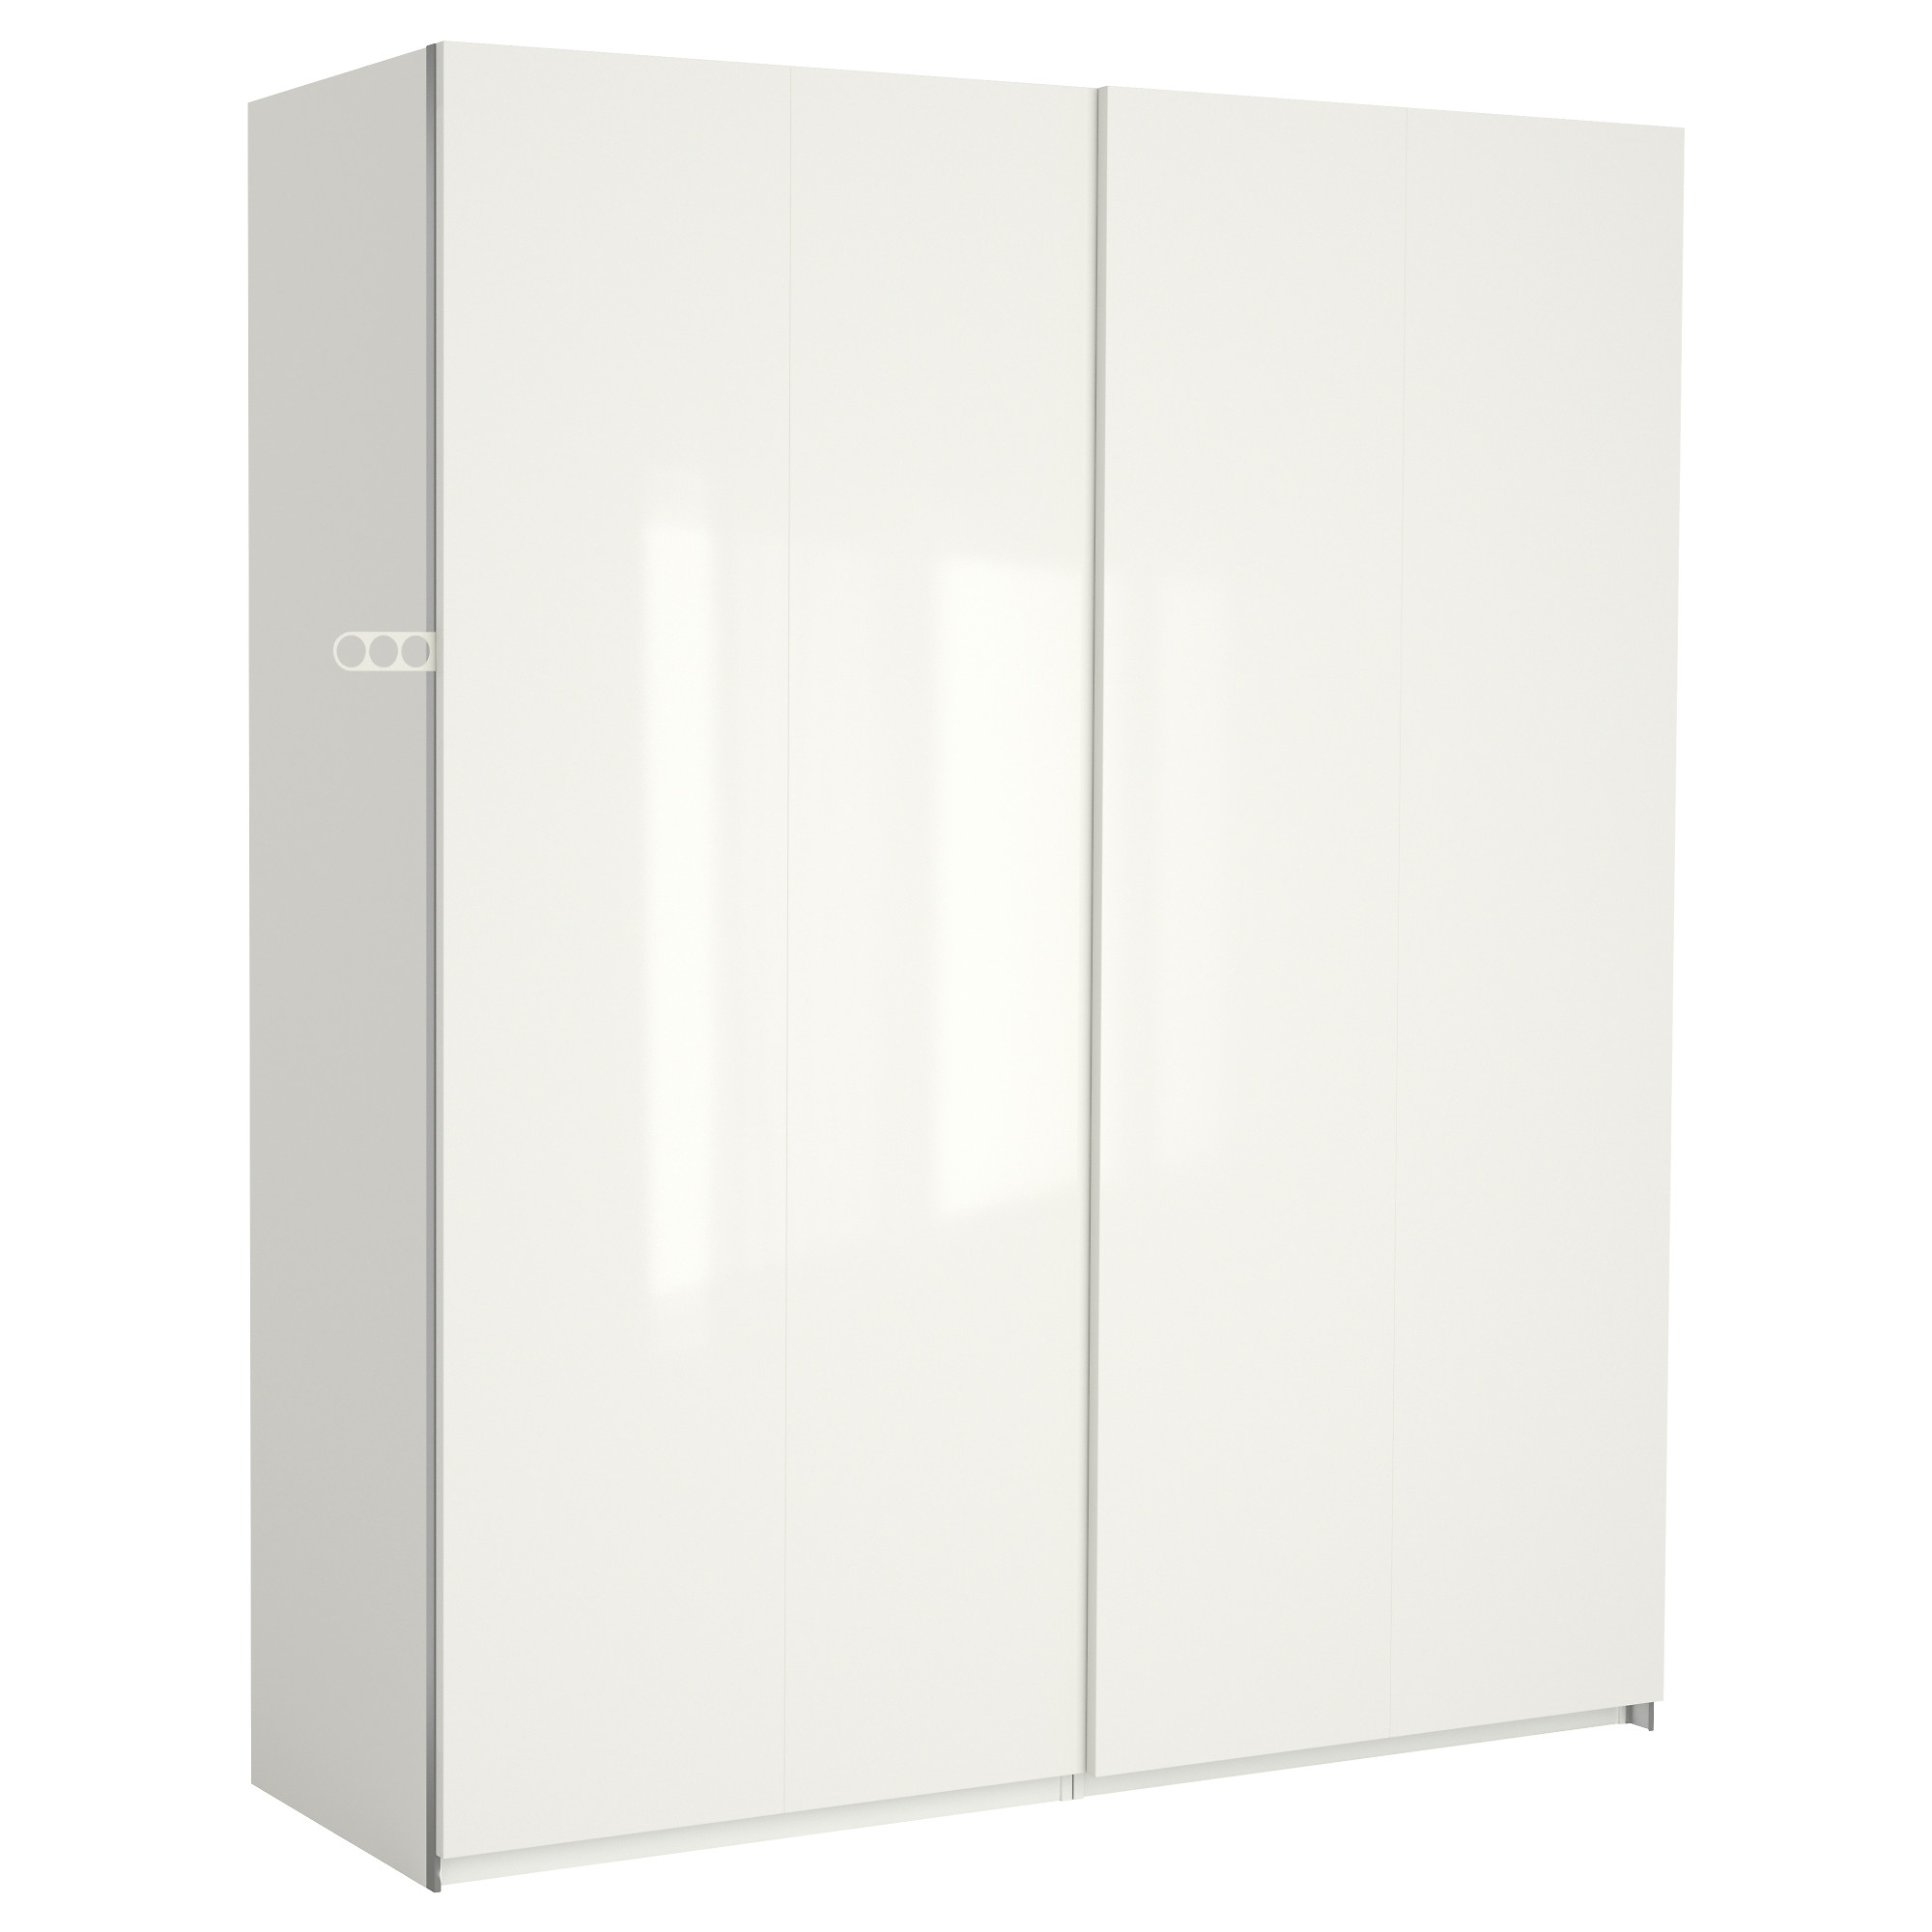 "White High Gloss Wardrobes Regarding Most Up To Date Pax Wardrobe – 78 3/4x26x79 1/4 "" – Ikea (View 5 of 15)"